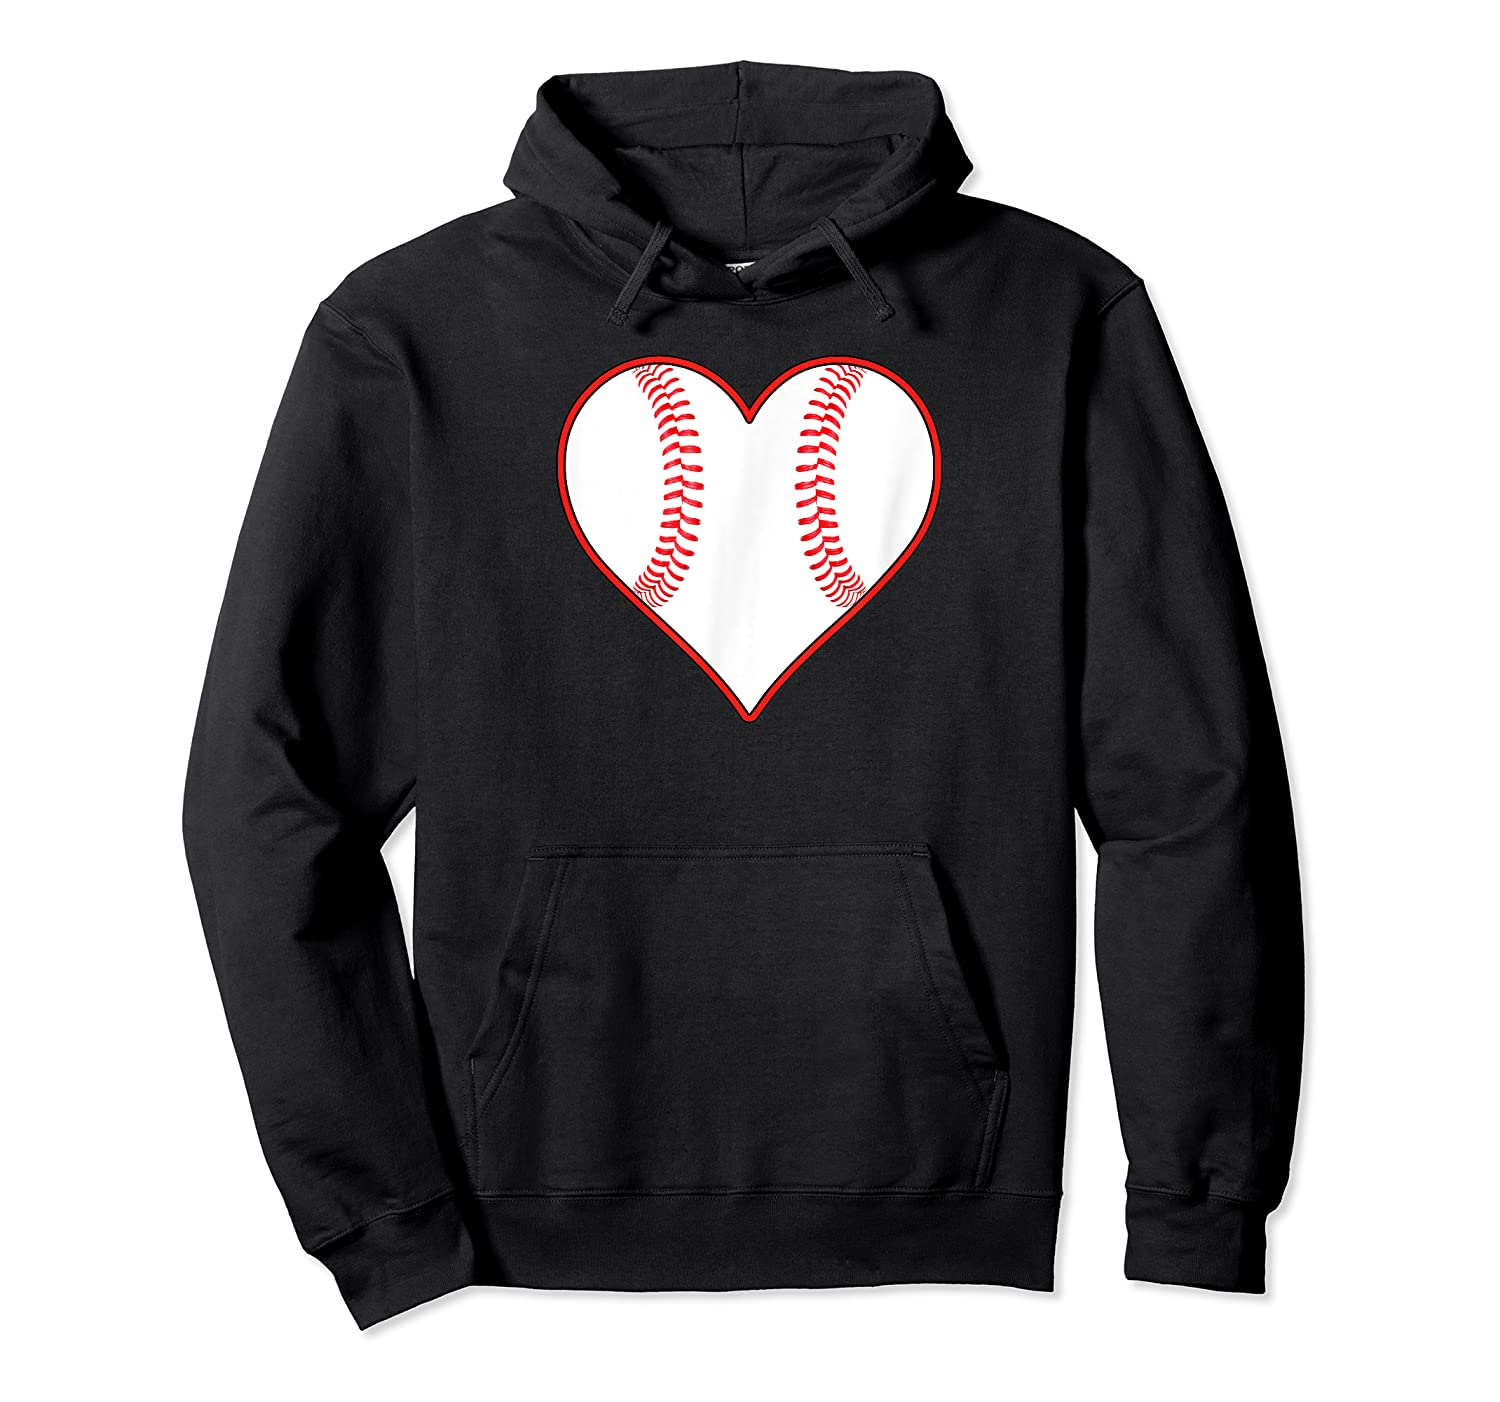 Baseball Player, Coach Or Fan Heart Shaped Baseball Graphic Shirts Unisex Pullover Hoodie